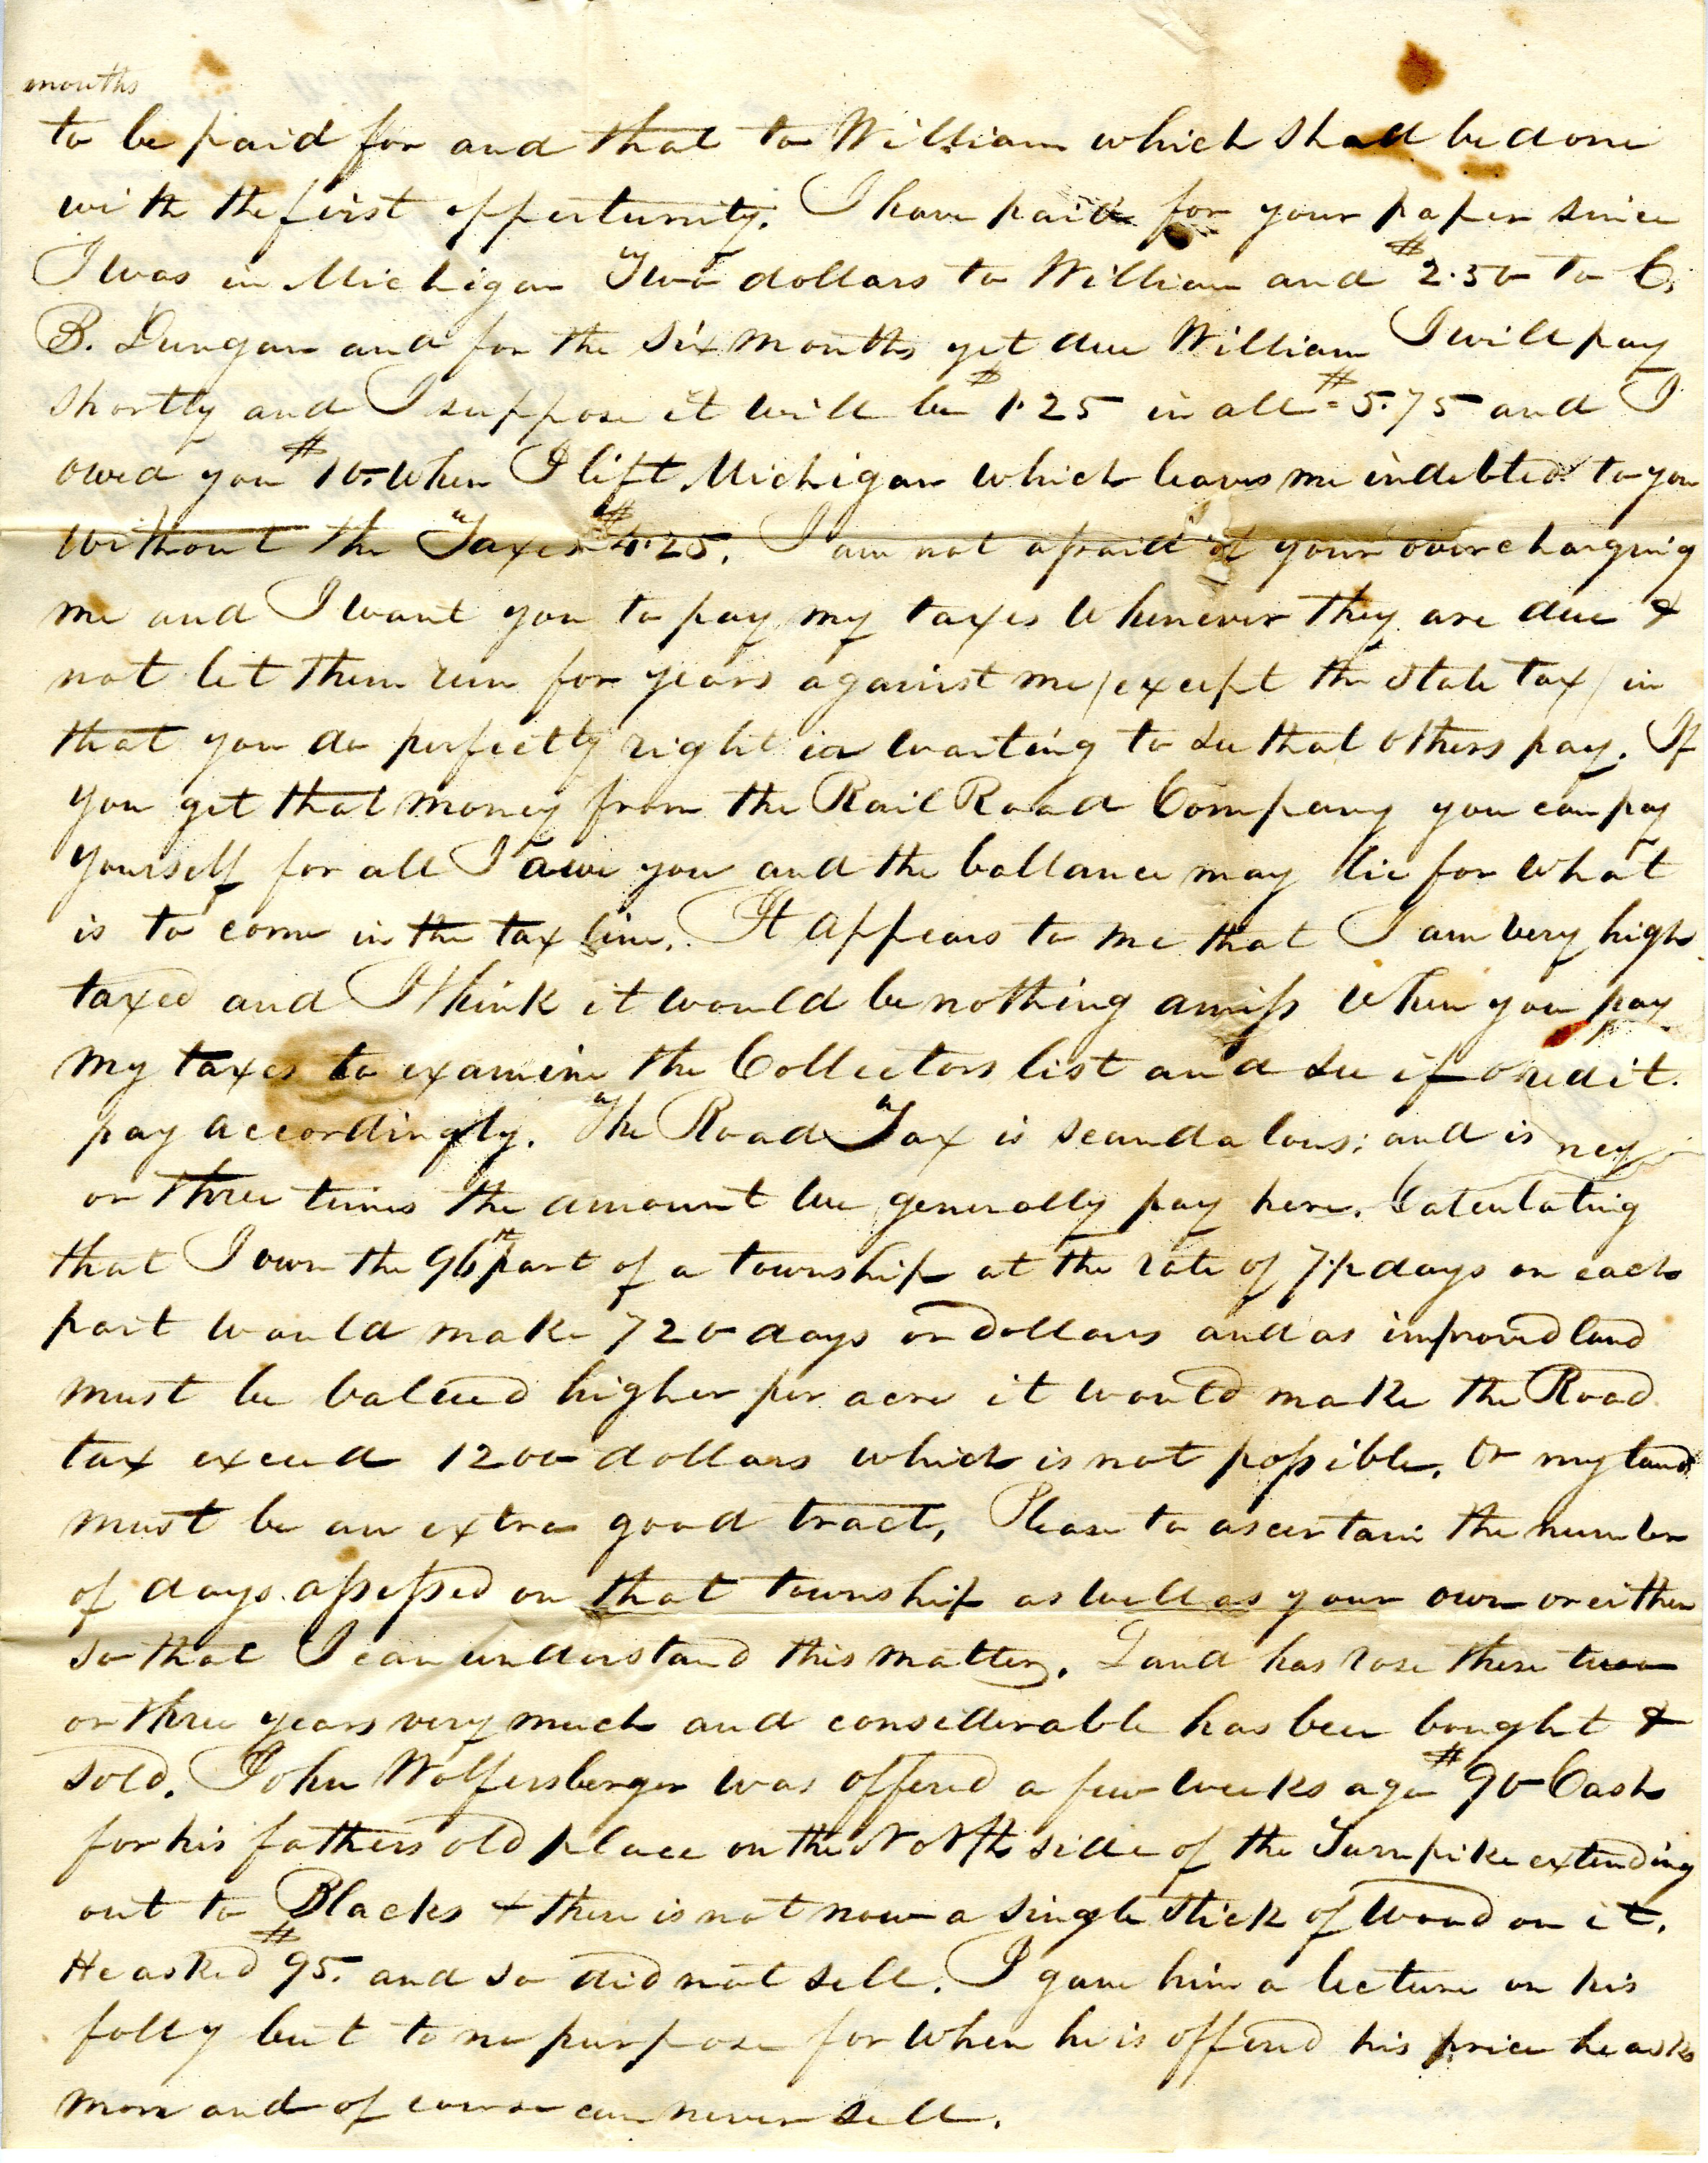 Letter From William Geddes to John Geddes, February 2, 1839 image